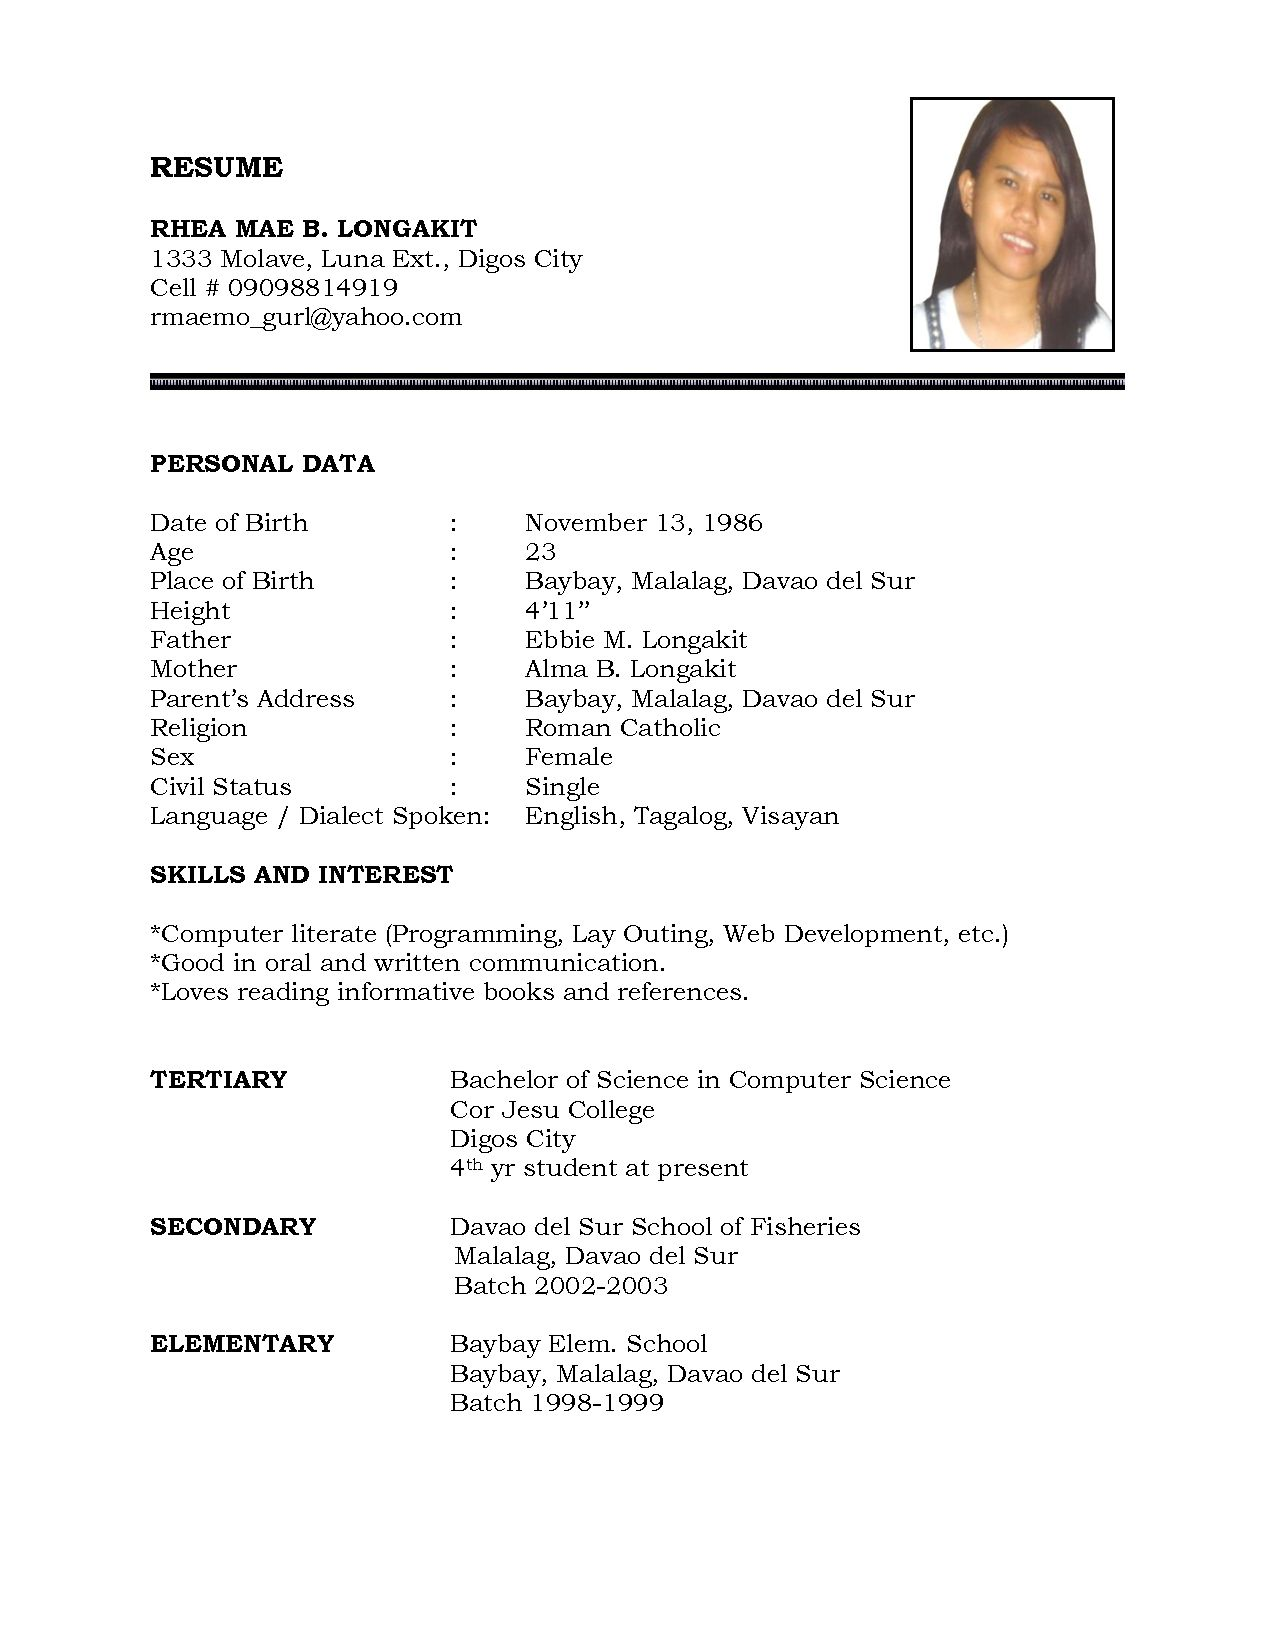 Example Of A Simple Resume Resume Sample Simple De9E2A60F The Simple Format Of Resume For Job